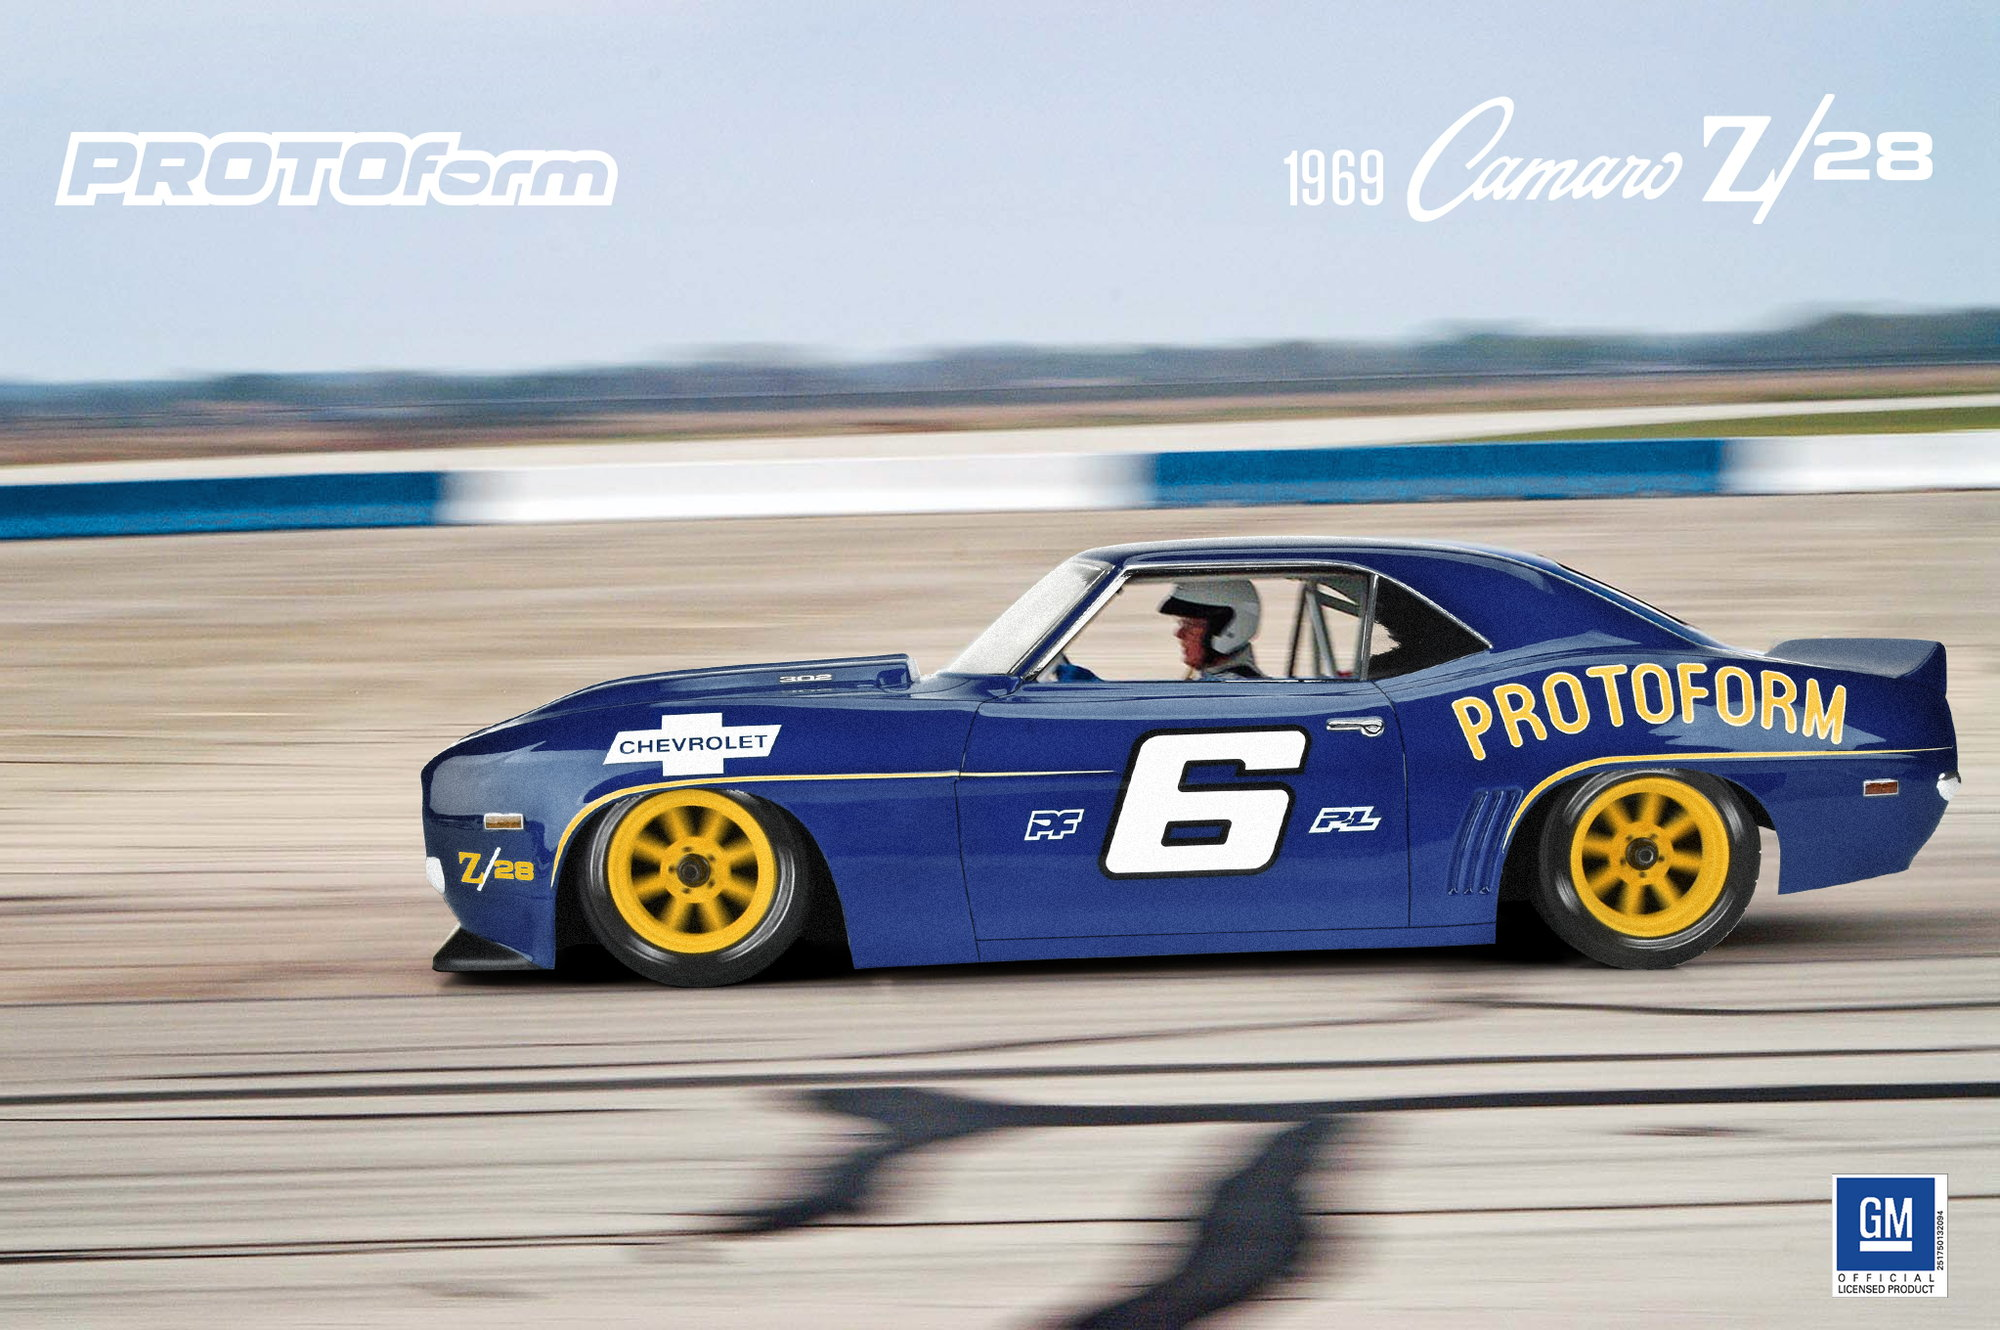 U.S. Vintage Trans-Am Racing Part 2 - Page 777 - R/C Tech Forums